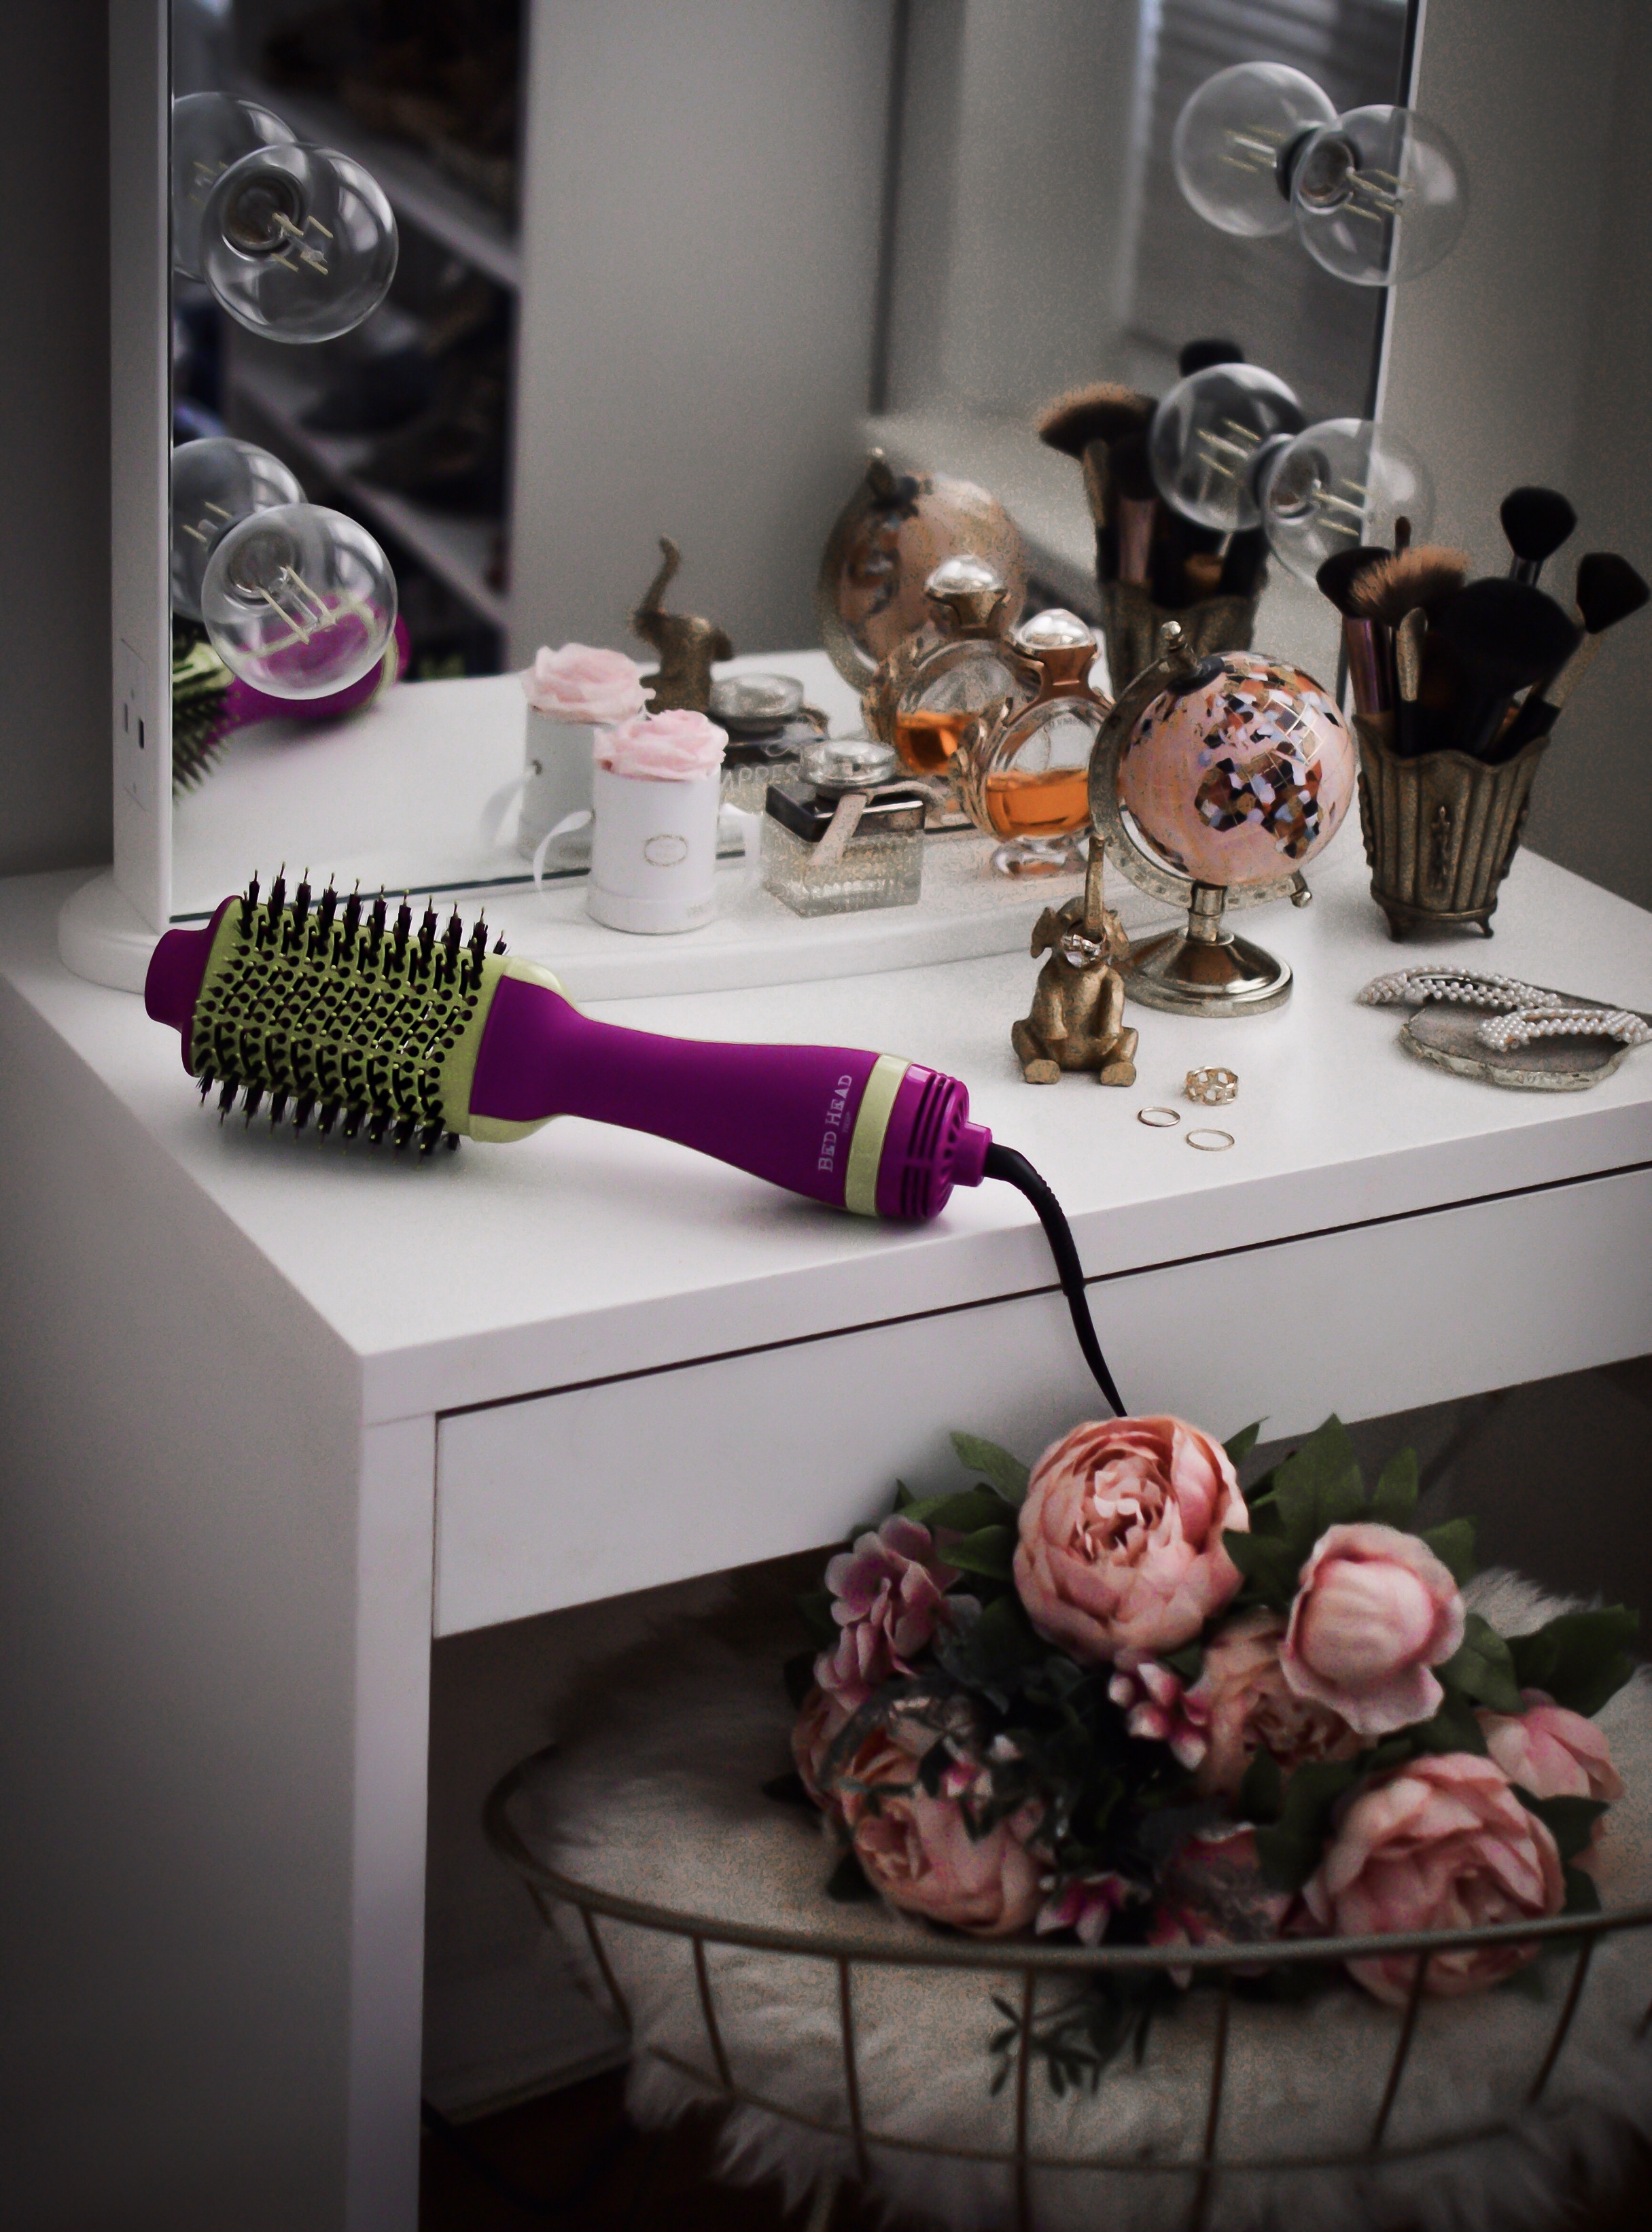 Best In Hair Tools Bed Head Blow Out Freak Dryer Esther Santer Fashion Blog NYC Street Style Blogger Outfit OOTD Trendy Shopping Girl What How To Wear Product Reviews Blowdryer Blowout Ulta Shopping Vanity Lights Colorful Purple  Green Rings Mirror .jpg